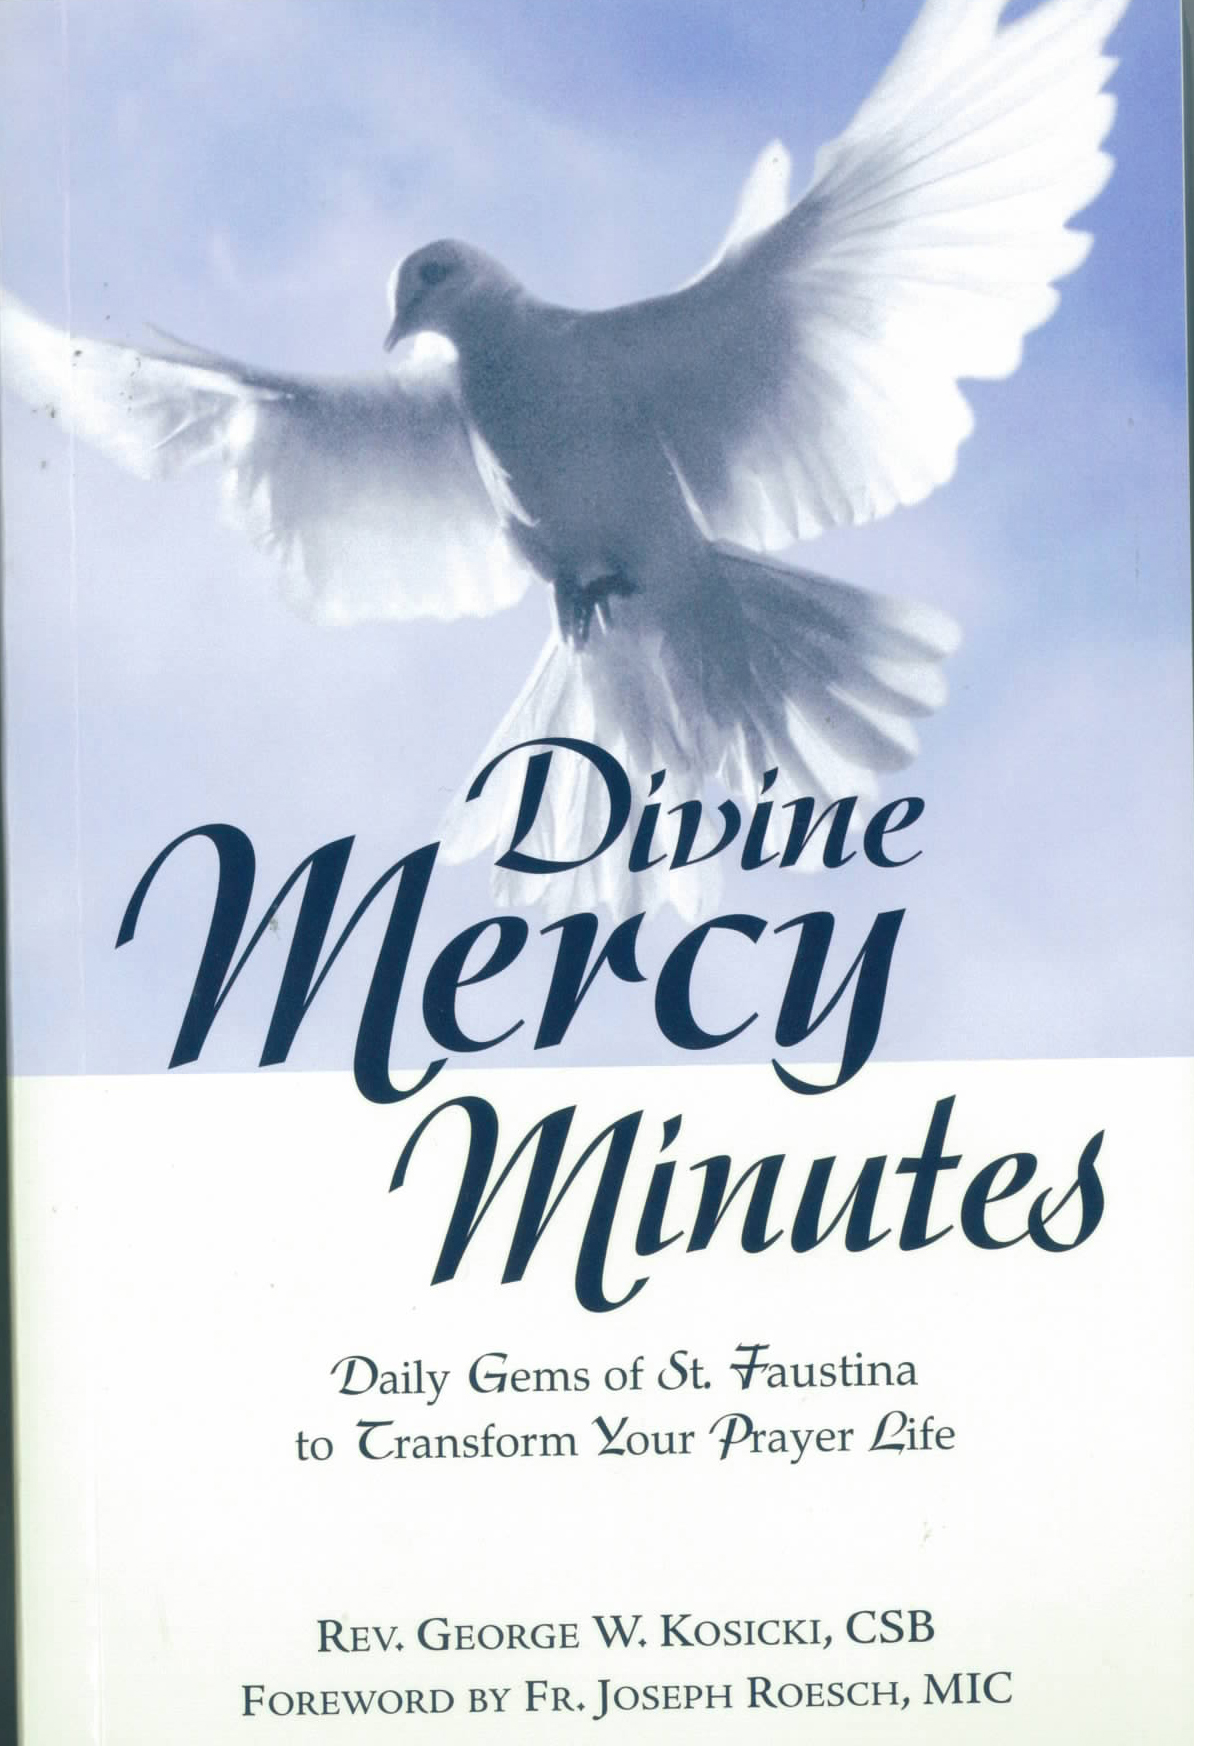 Divine Mercy Minutes Daily Gems of St. Faustina 9781596142008 Marian Press